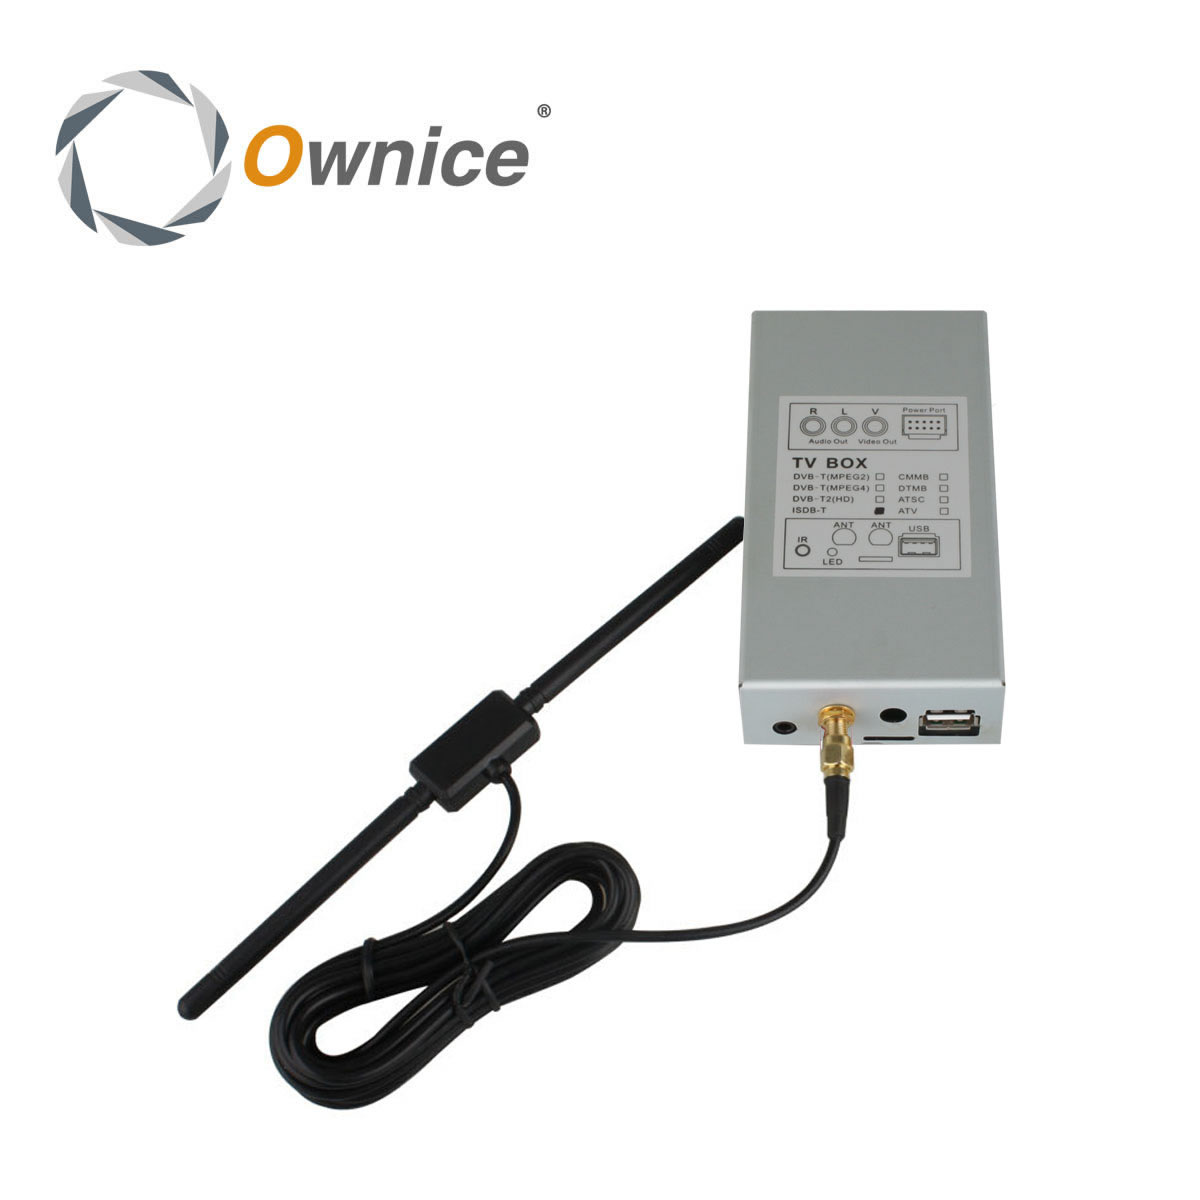 Special ISDB-T TV Box Tuners For Ownice Car DVD Player. The item just for our DVD special dvb t mpeg4 tv box tuners for ownice car dvd player the item just for our dvd